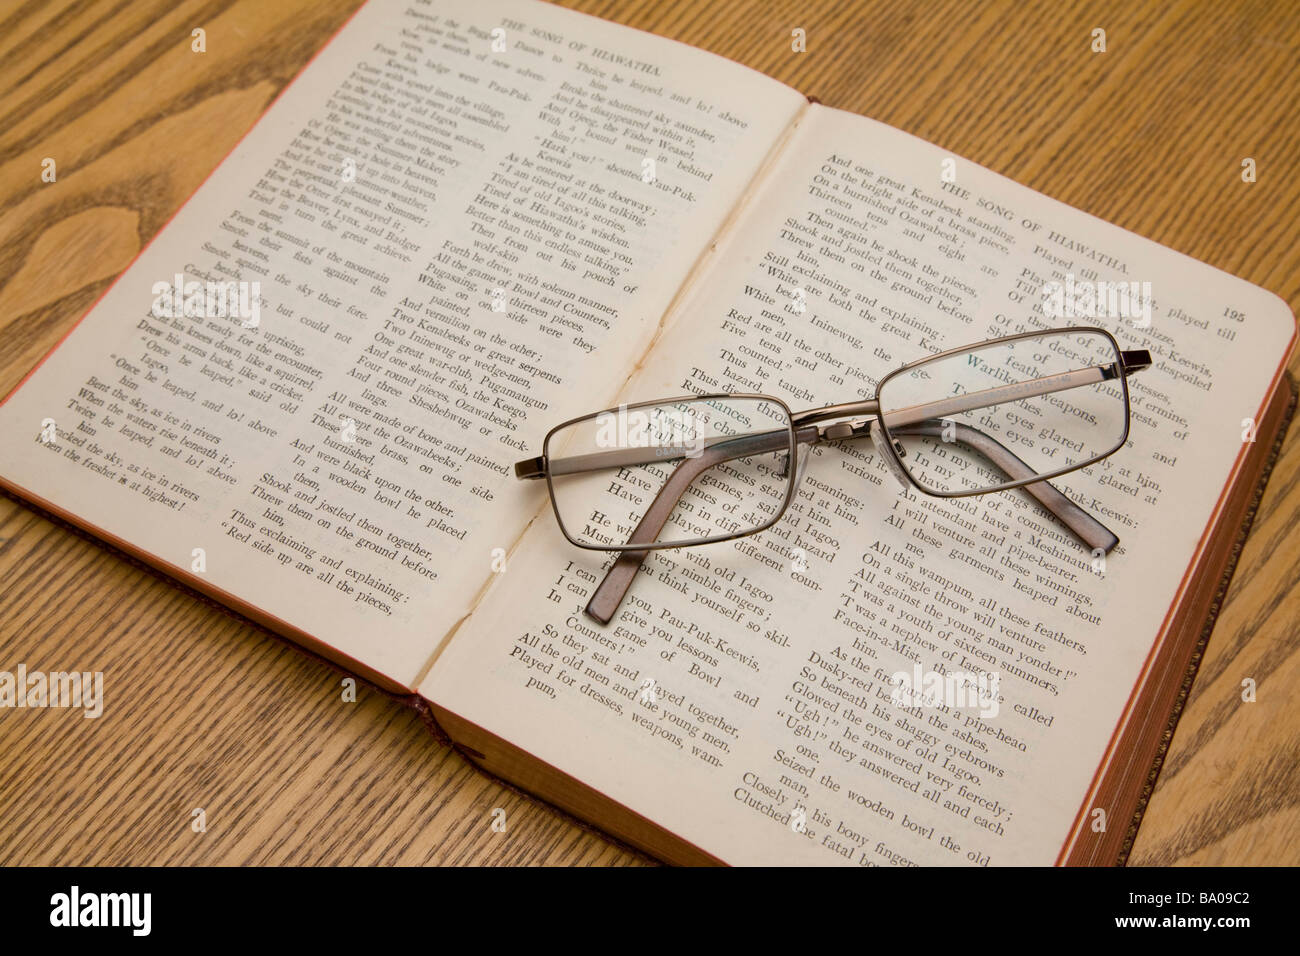 A pair of reading glasses resting on a book of Longfellow poems. Stock Photo